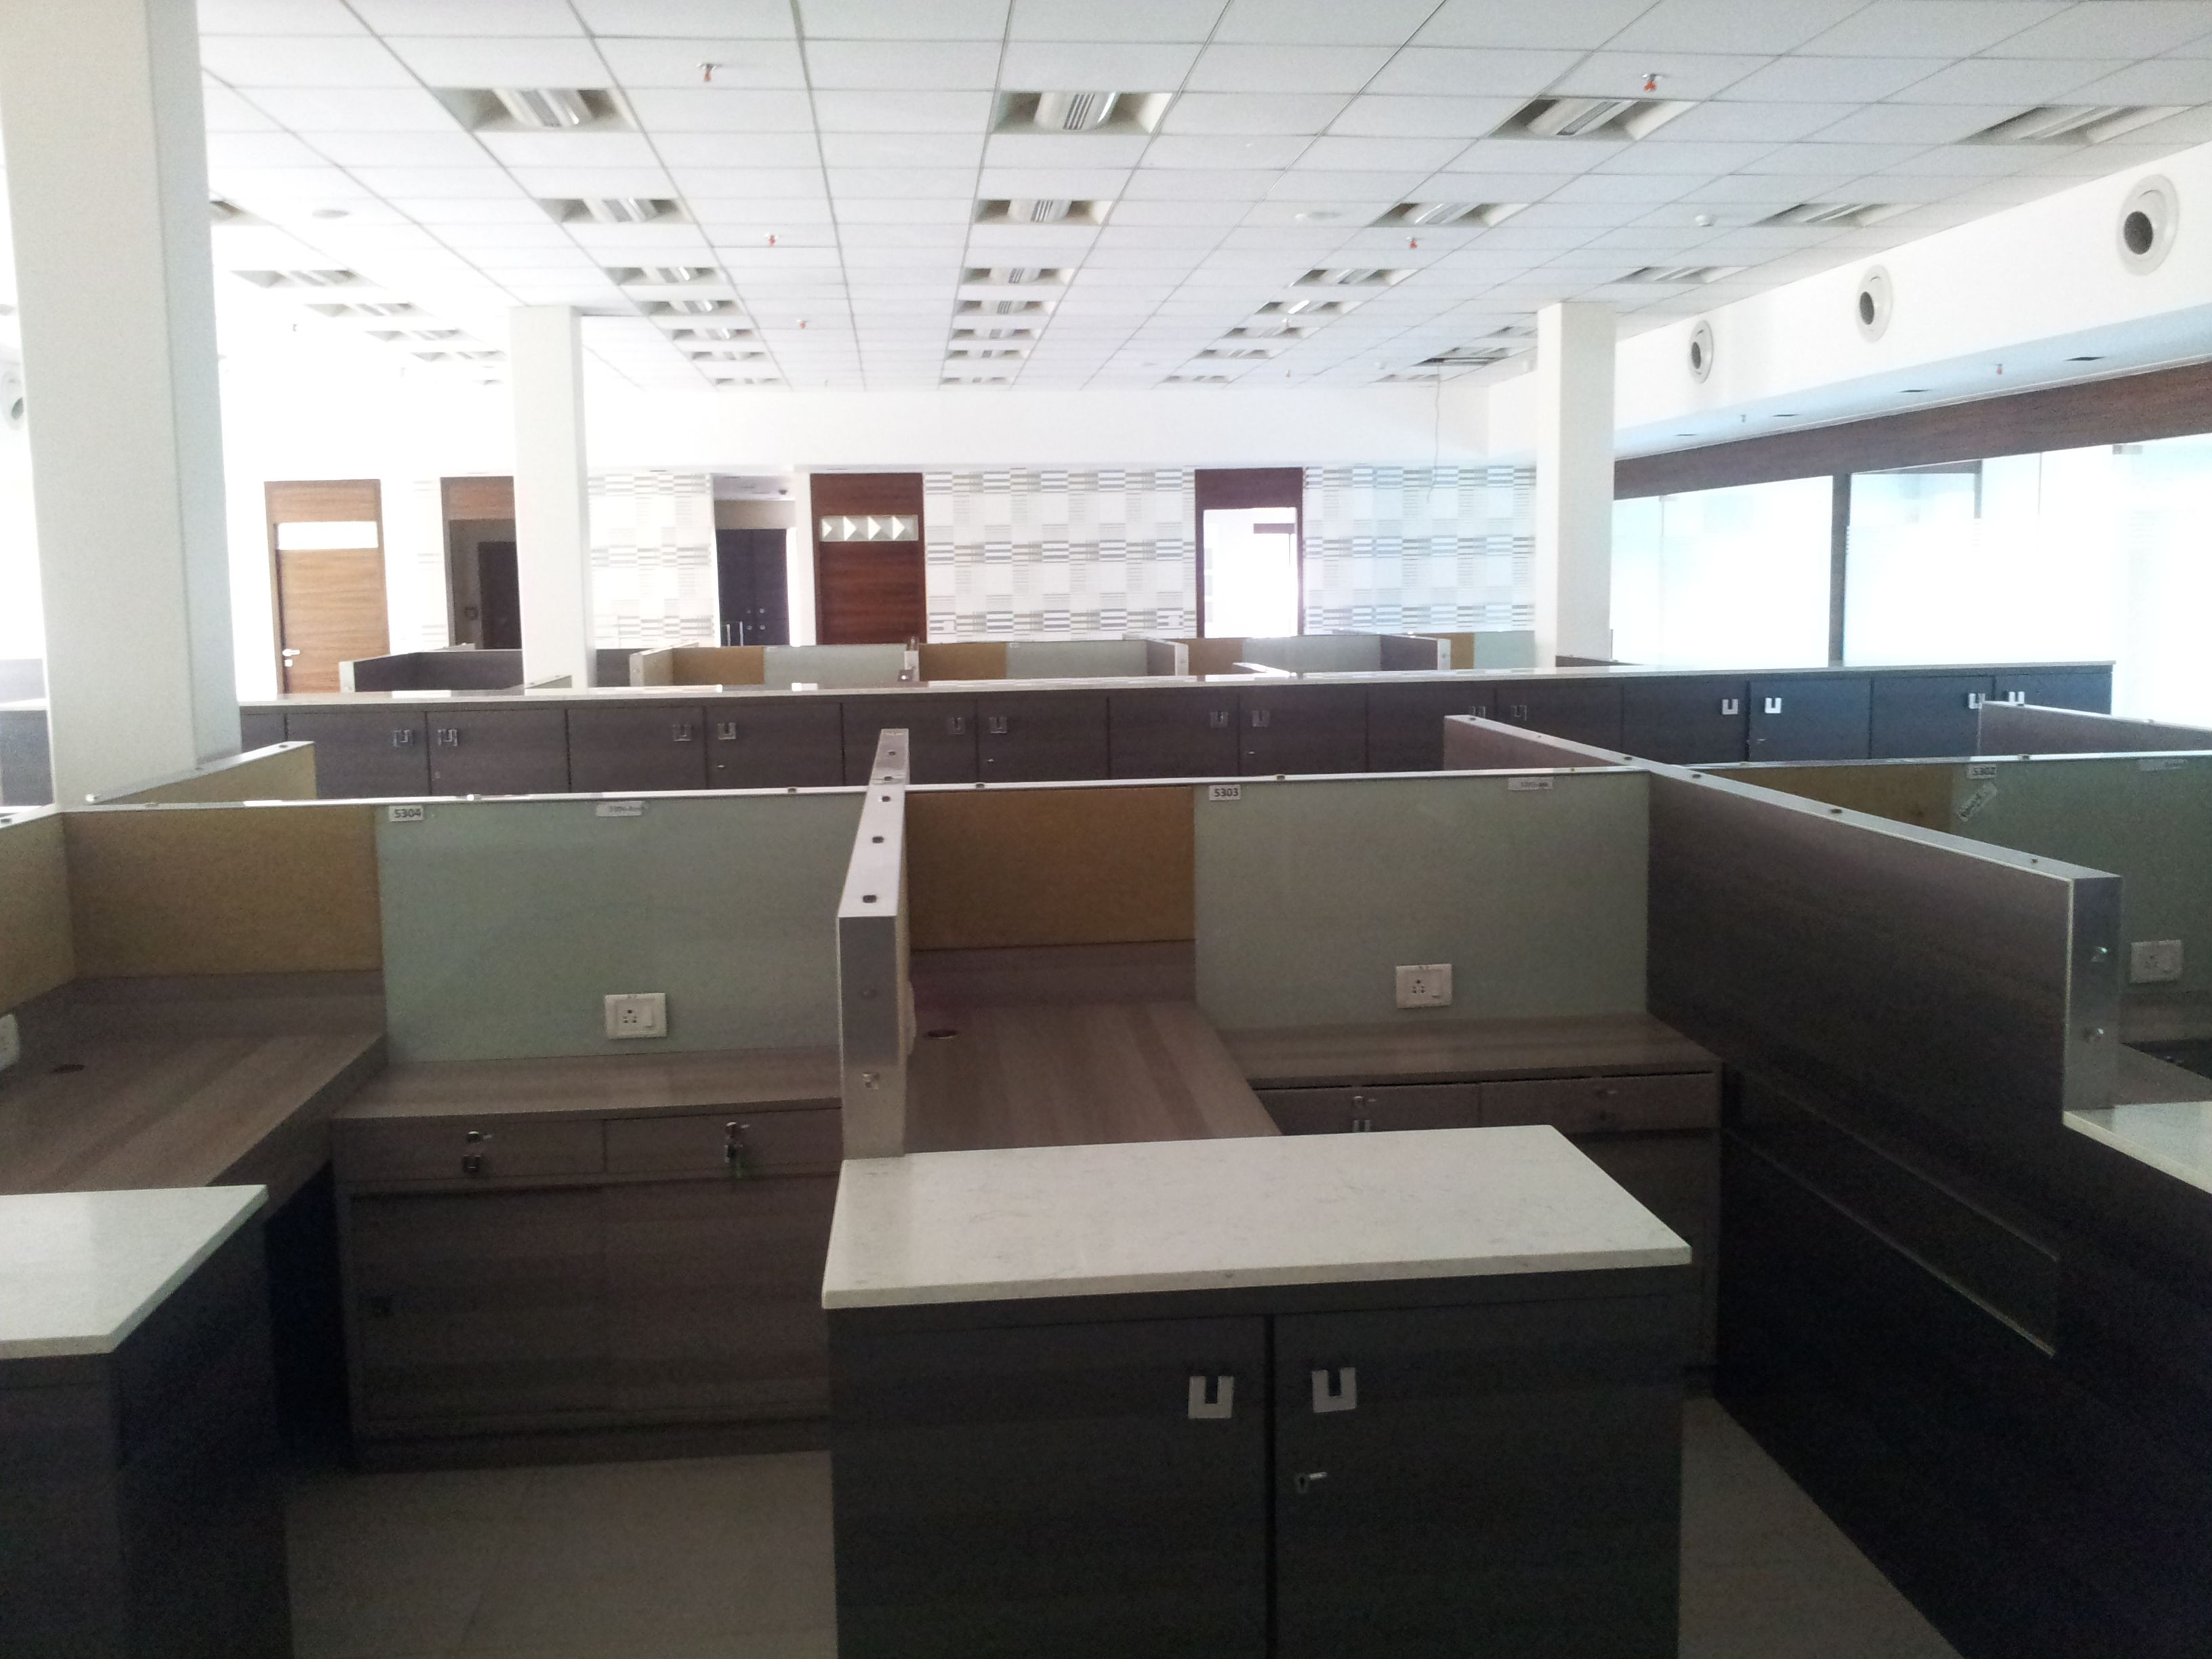 http://www.iosrealty.in/office-space-D-17.htm  Commercial Properties Furnished Office Space Plug N Play Offices at Andheri Bandra Kurla Complex Kalina CST Road on Rent Lease Sale for Corporate & MNC